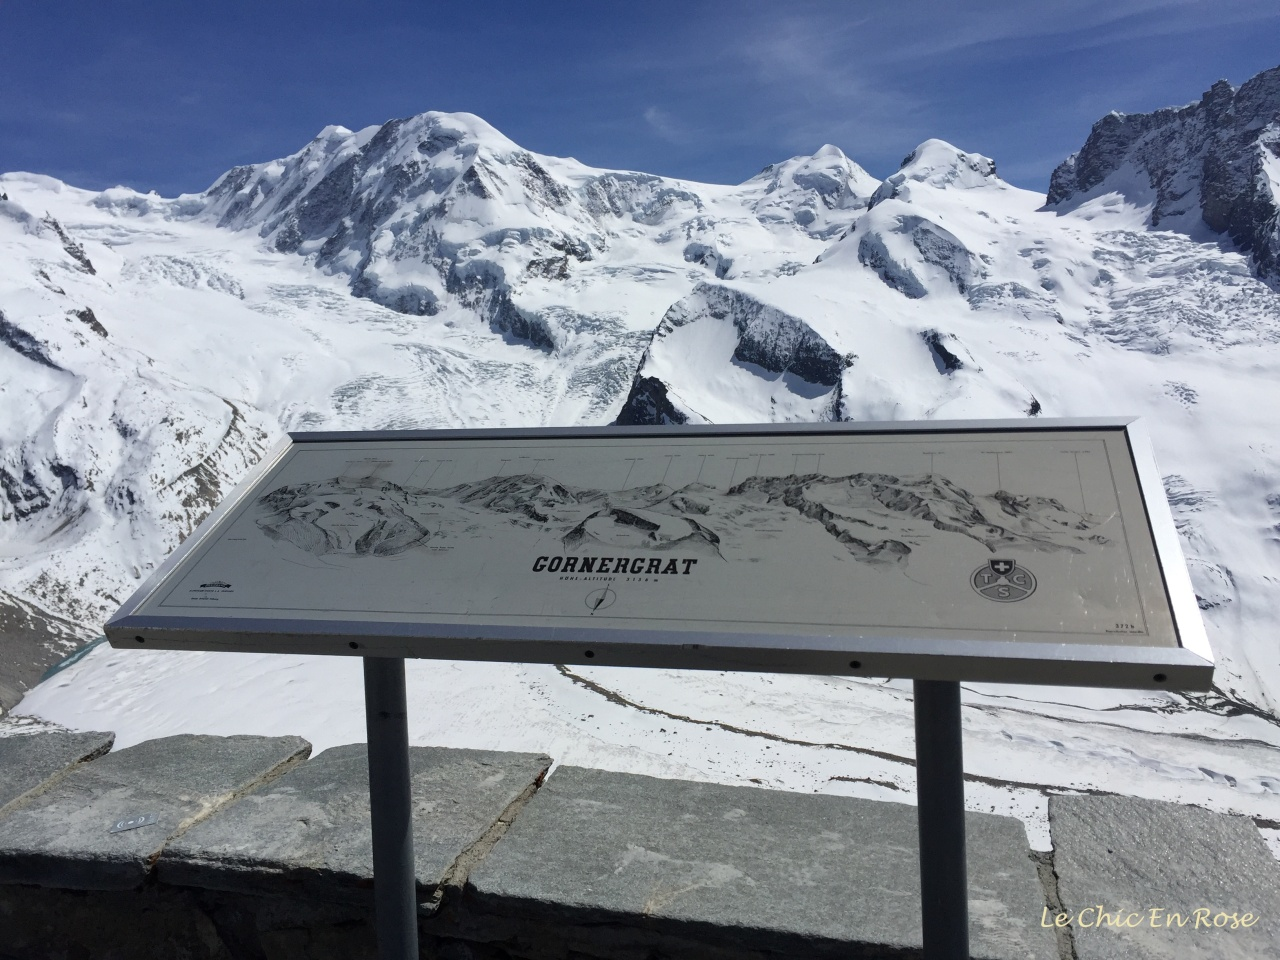 Gornergrat Summit Viewing Platform